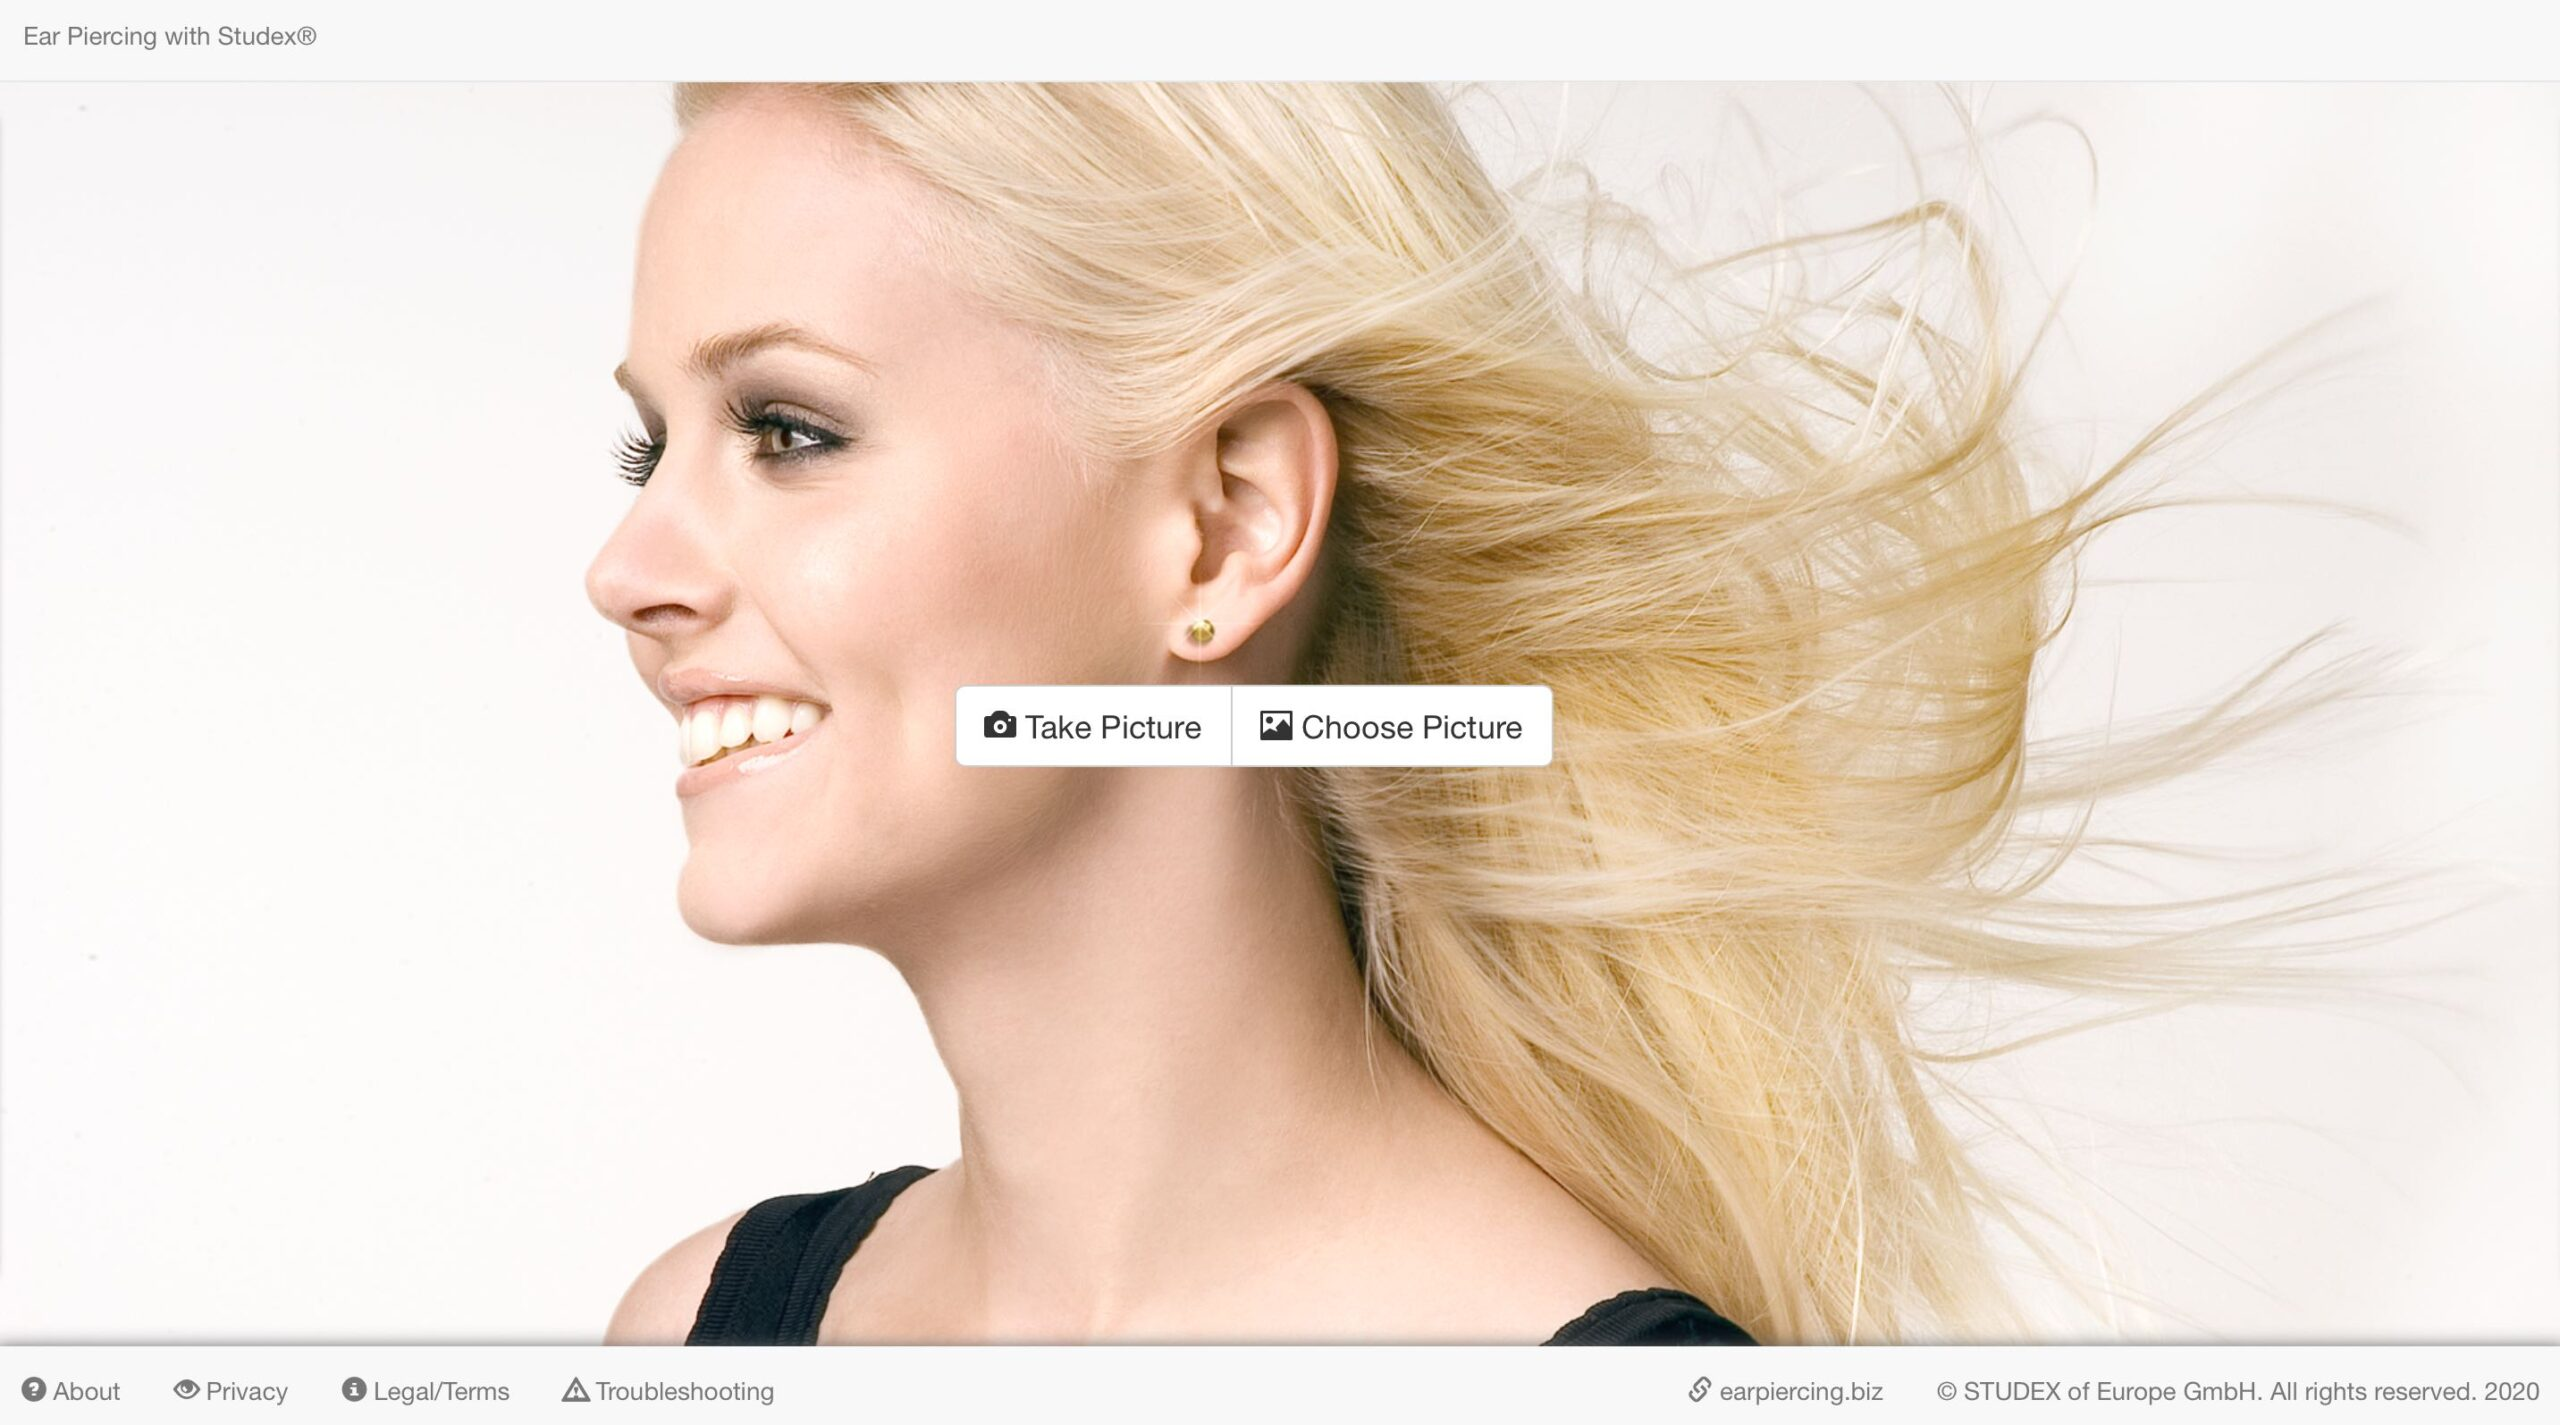 STUDEX® Ear Piercing App for PCs (Inglese): versione html per PC